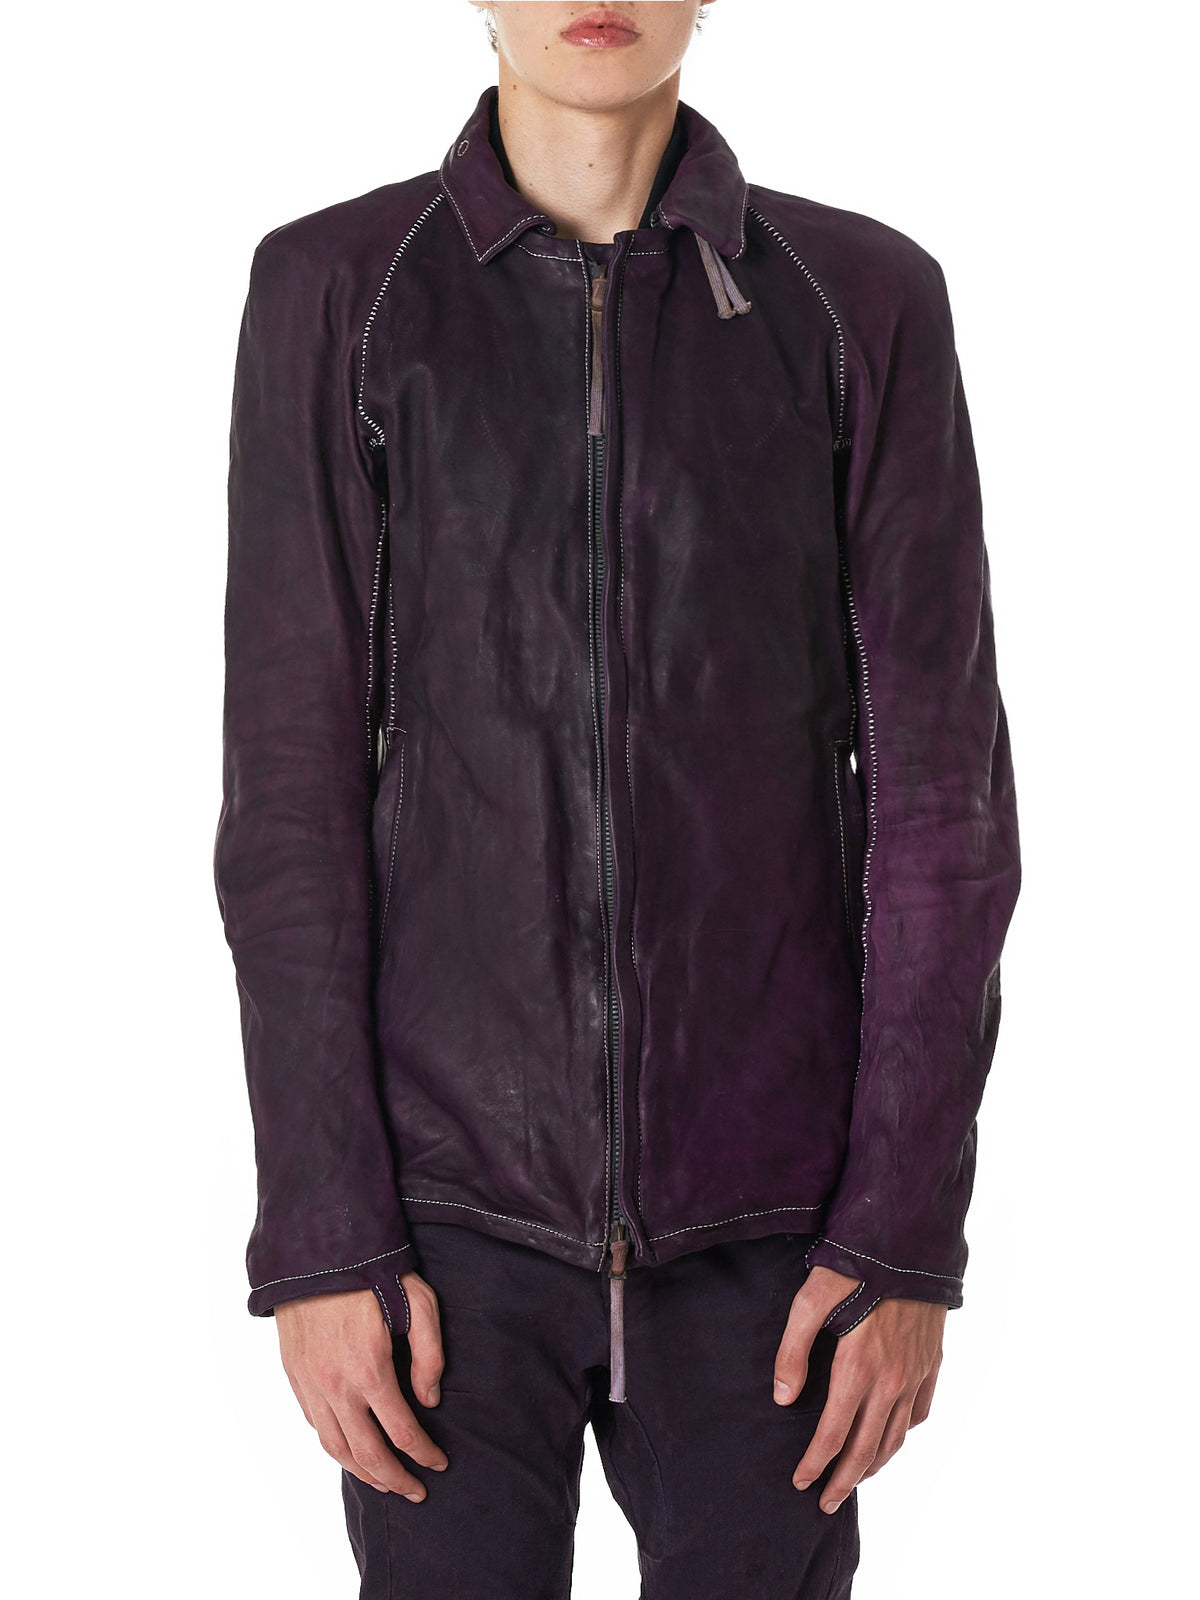 Boris Bidjan Saberi J2 Purple Leather Jacket - Hlorenzo Front